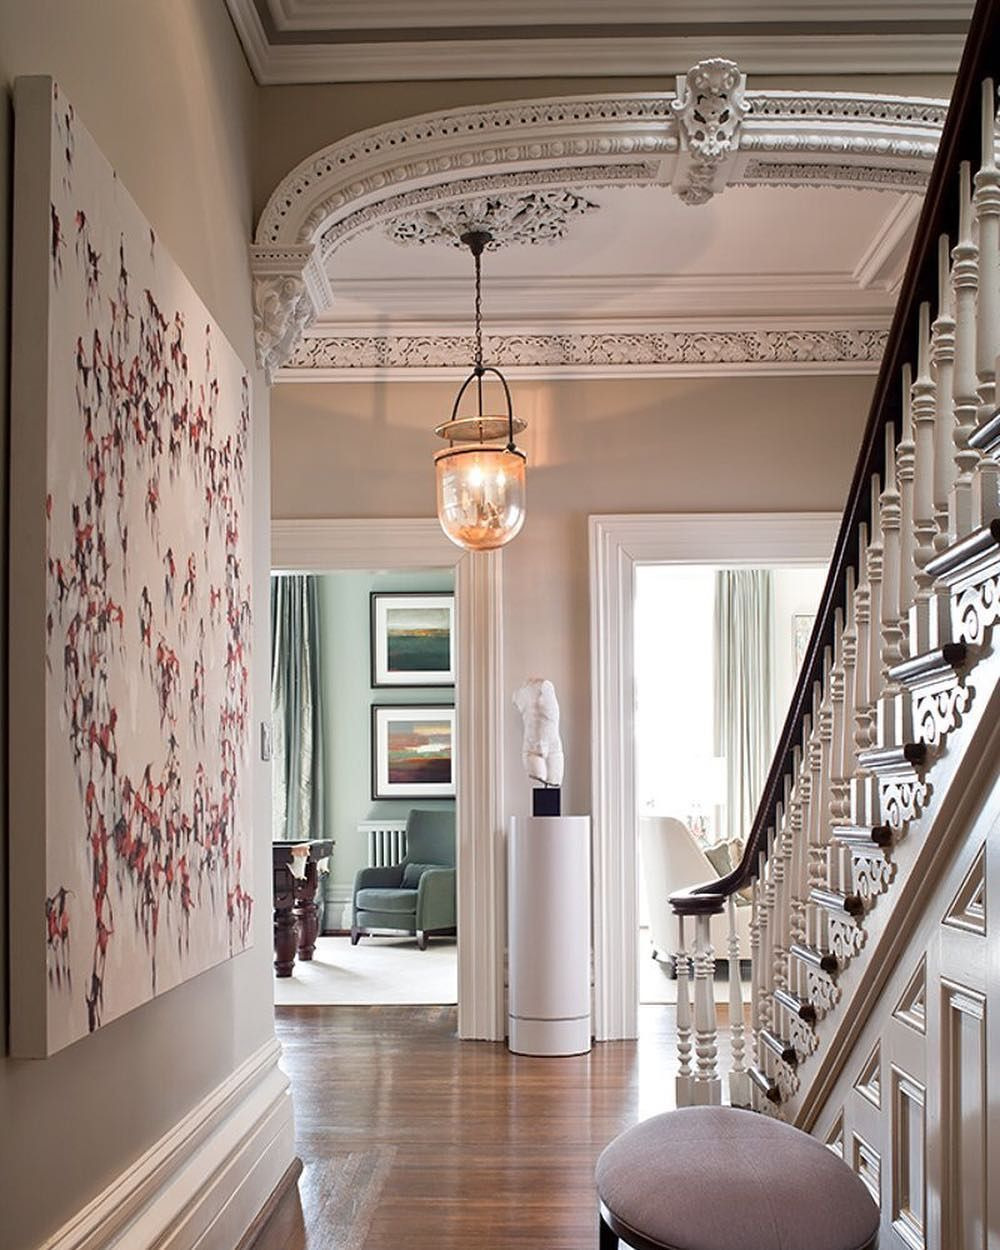 Most Beautiful Home Interiors In the World Best Of the 1stdibs Feed is Filled with the Most Beautiful Rooms In